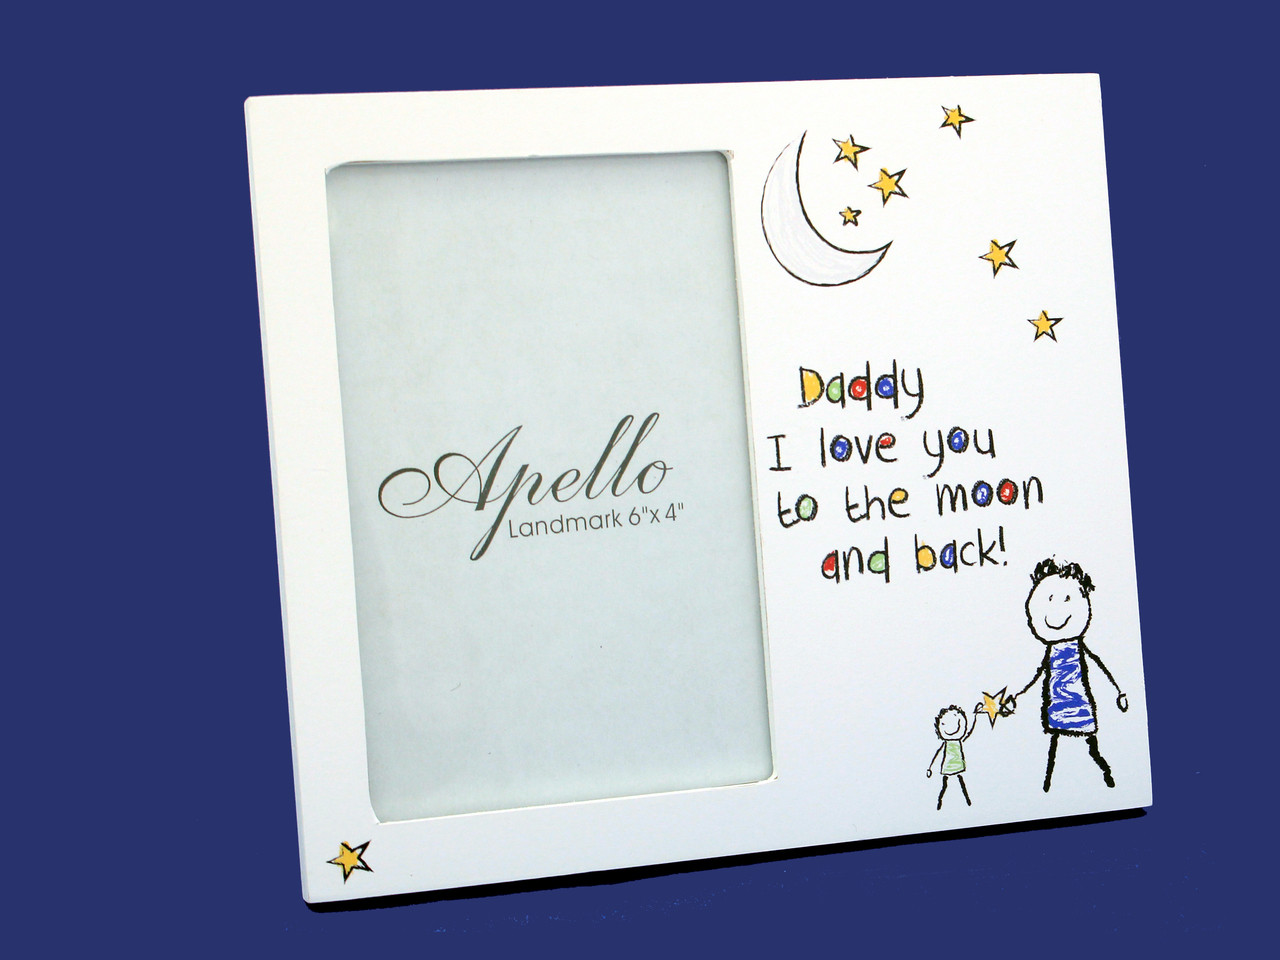 Daddy White Photo Frame - Beautiful Frames & Gifts Store